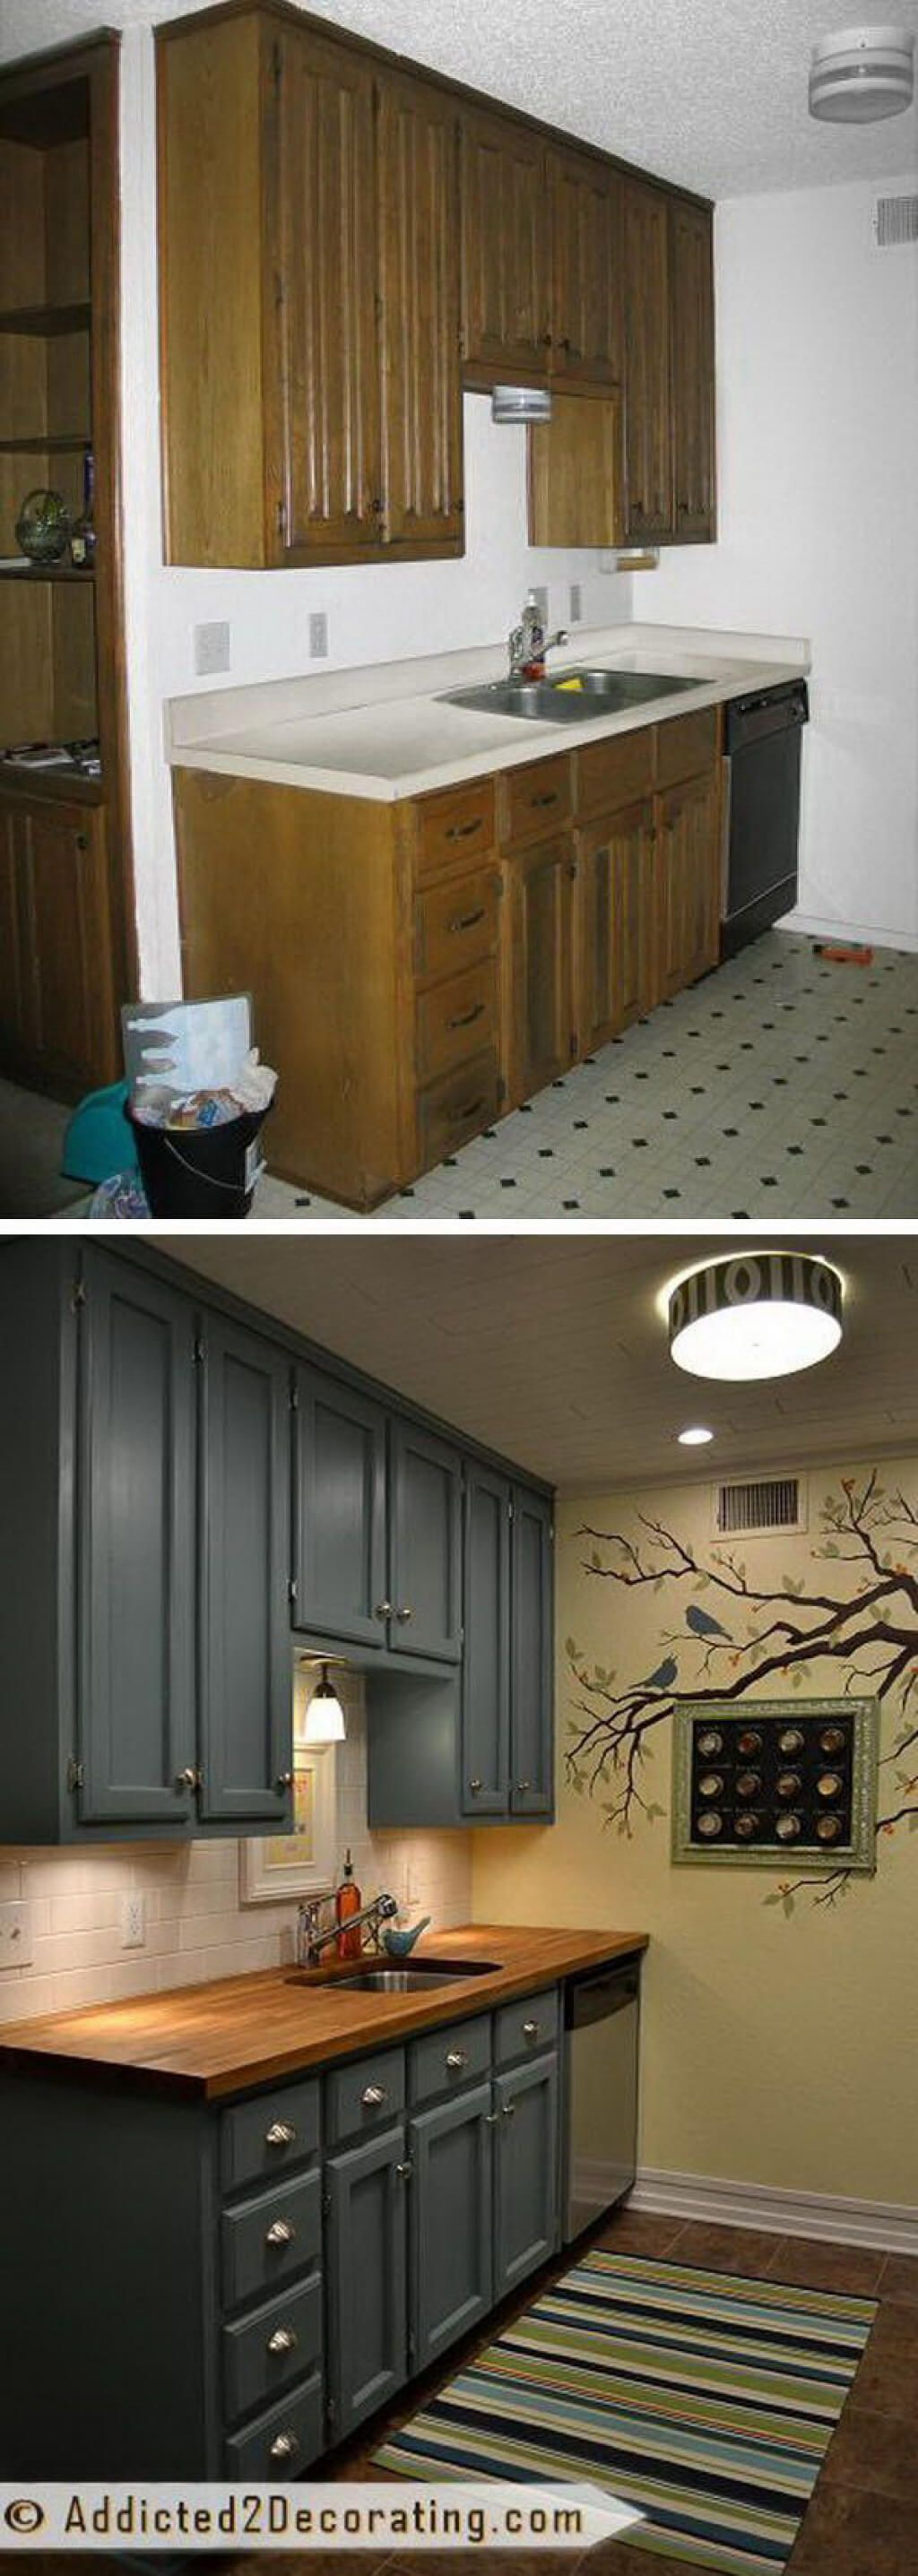 A Dark Vintage Design With Sandy Tiled Floors Cheap Home Decor